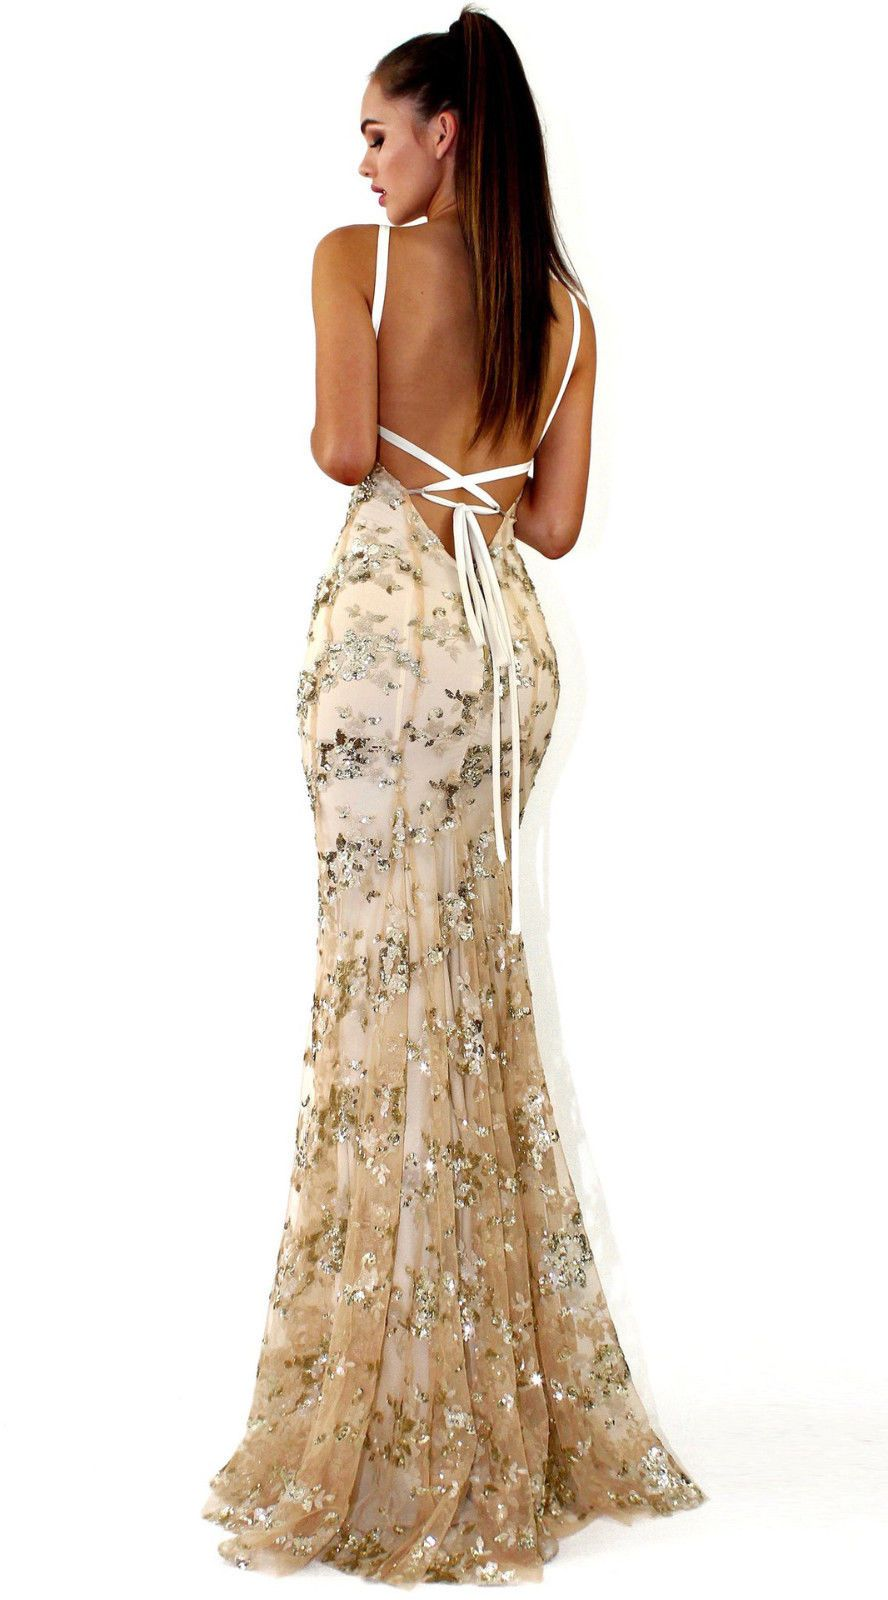 Details about sequin gown plunge backless maxi dress